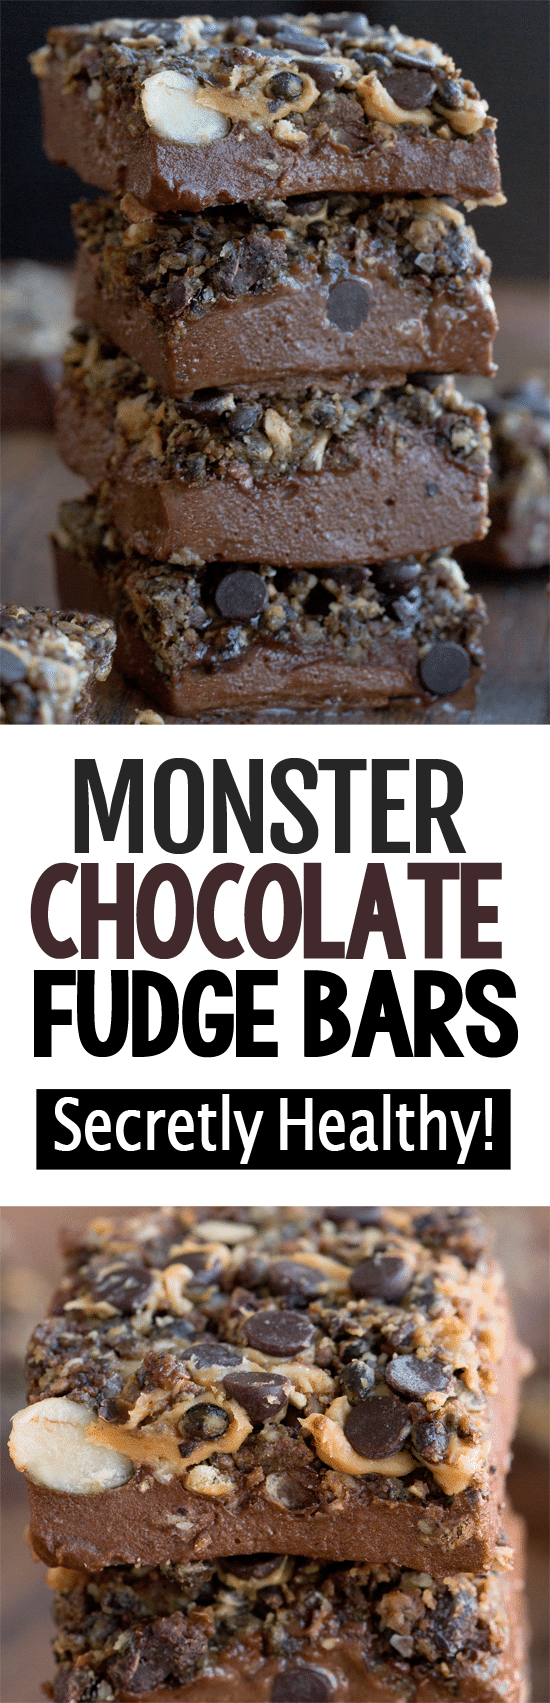 Secretly Healthy Monster Chocolate Fudge Bar Recipe